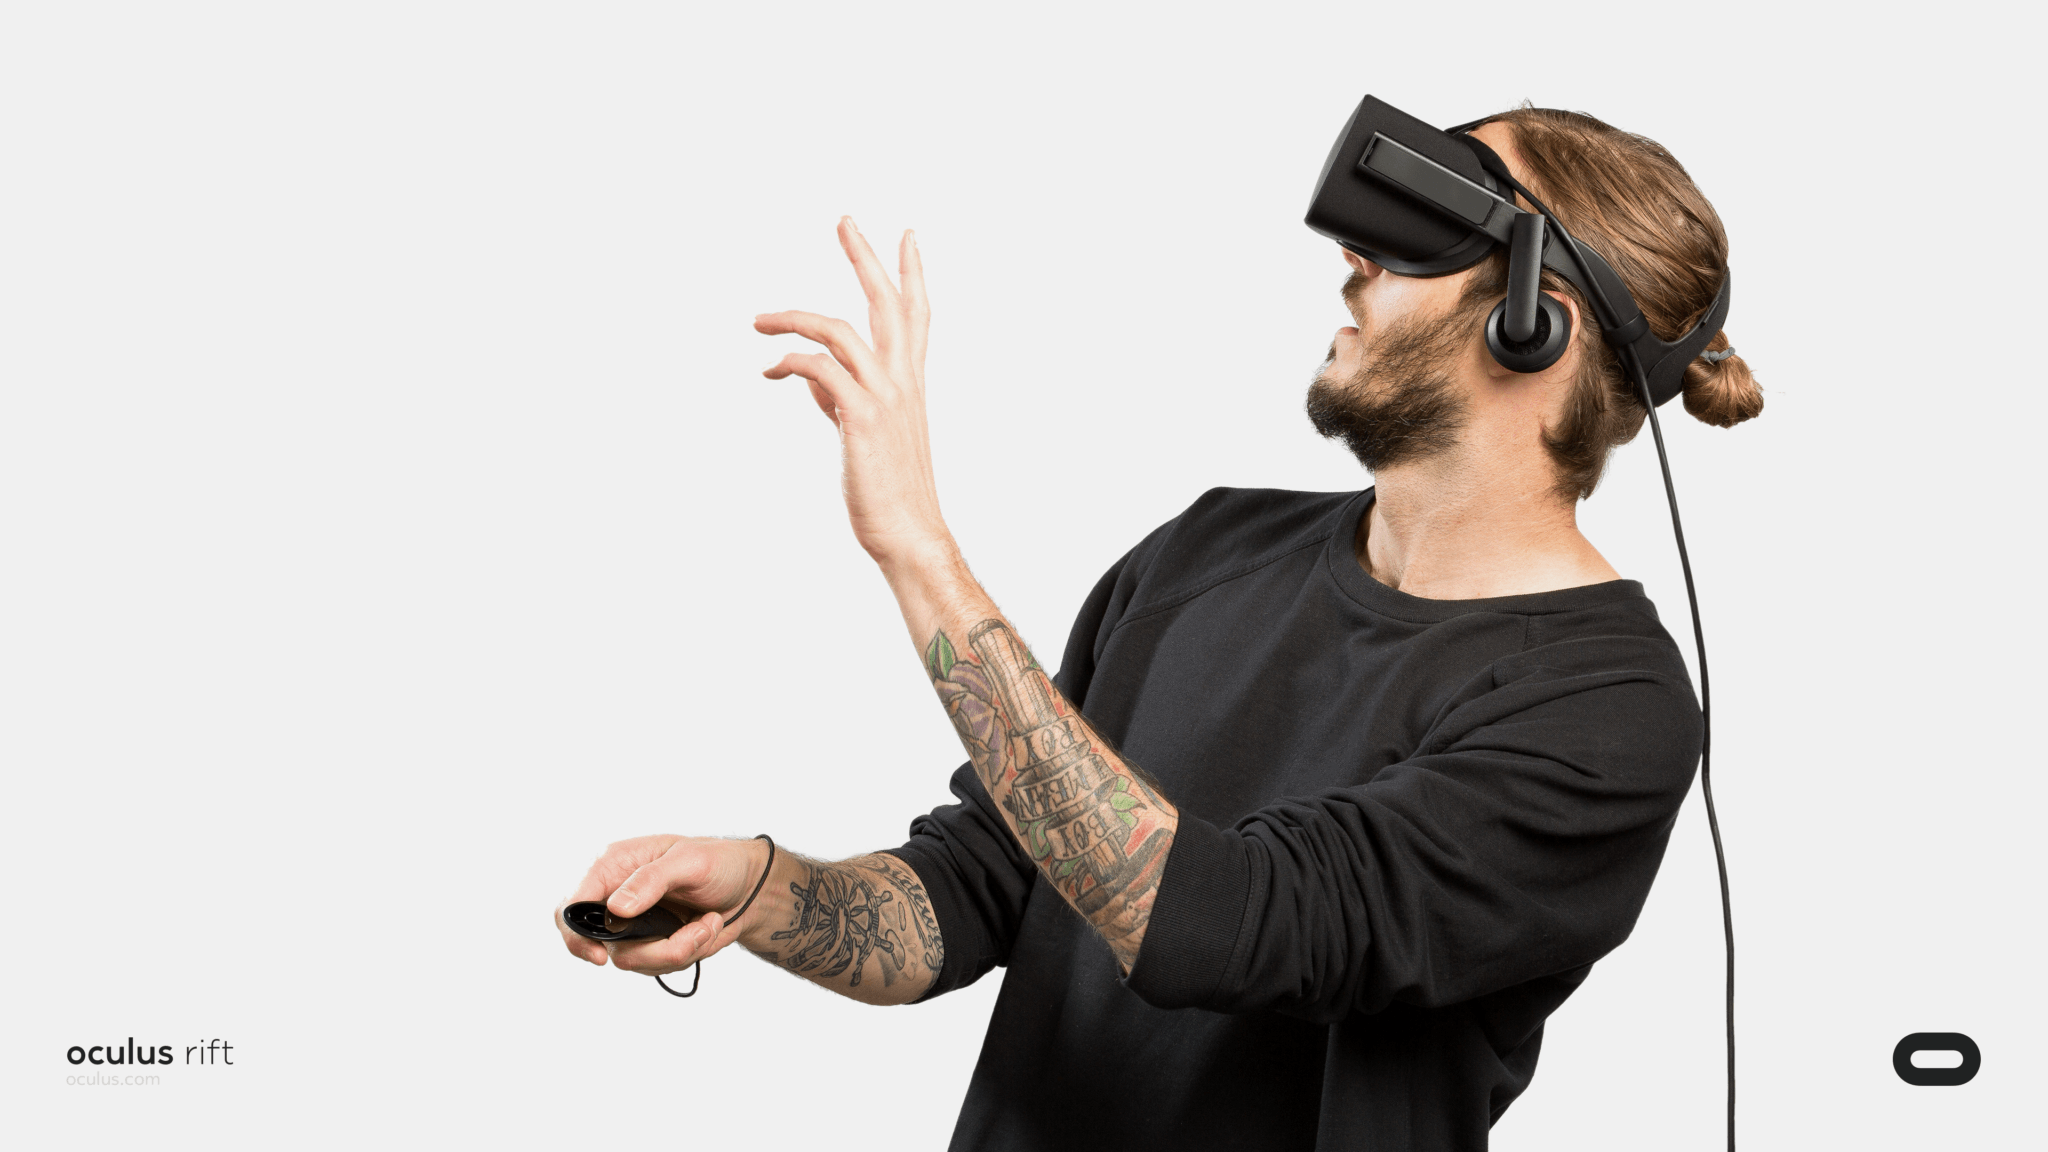 Oculus Rift Headsets Stop Working Because Of Expired Security Certificate